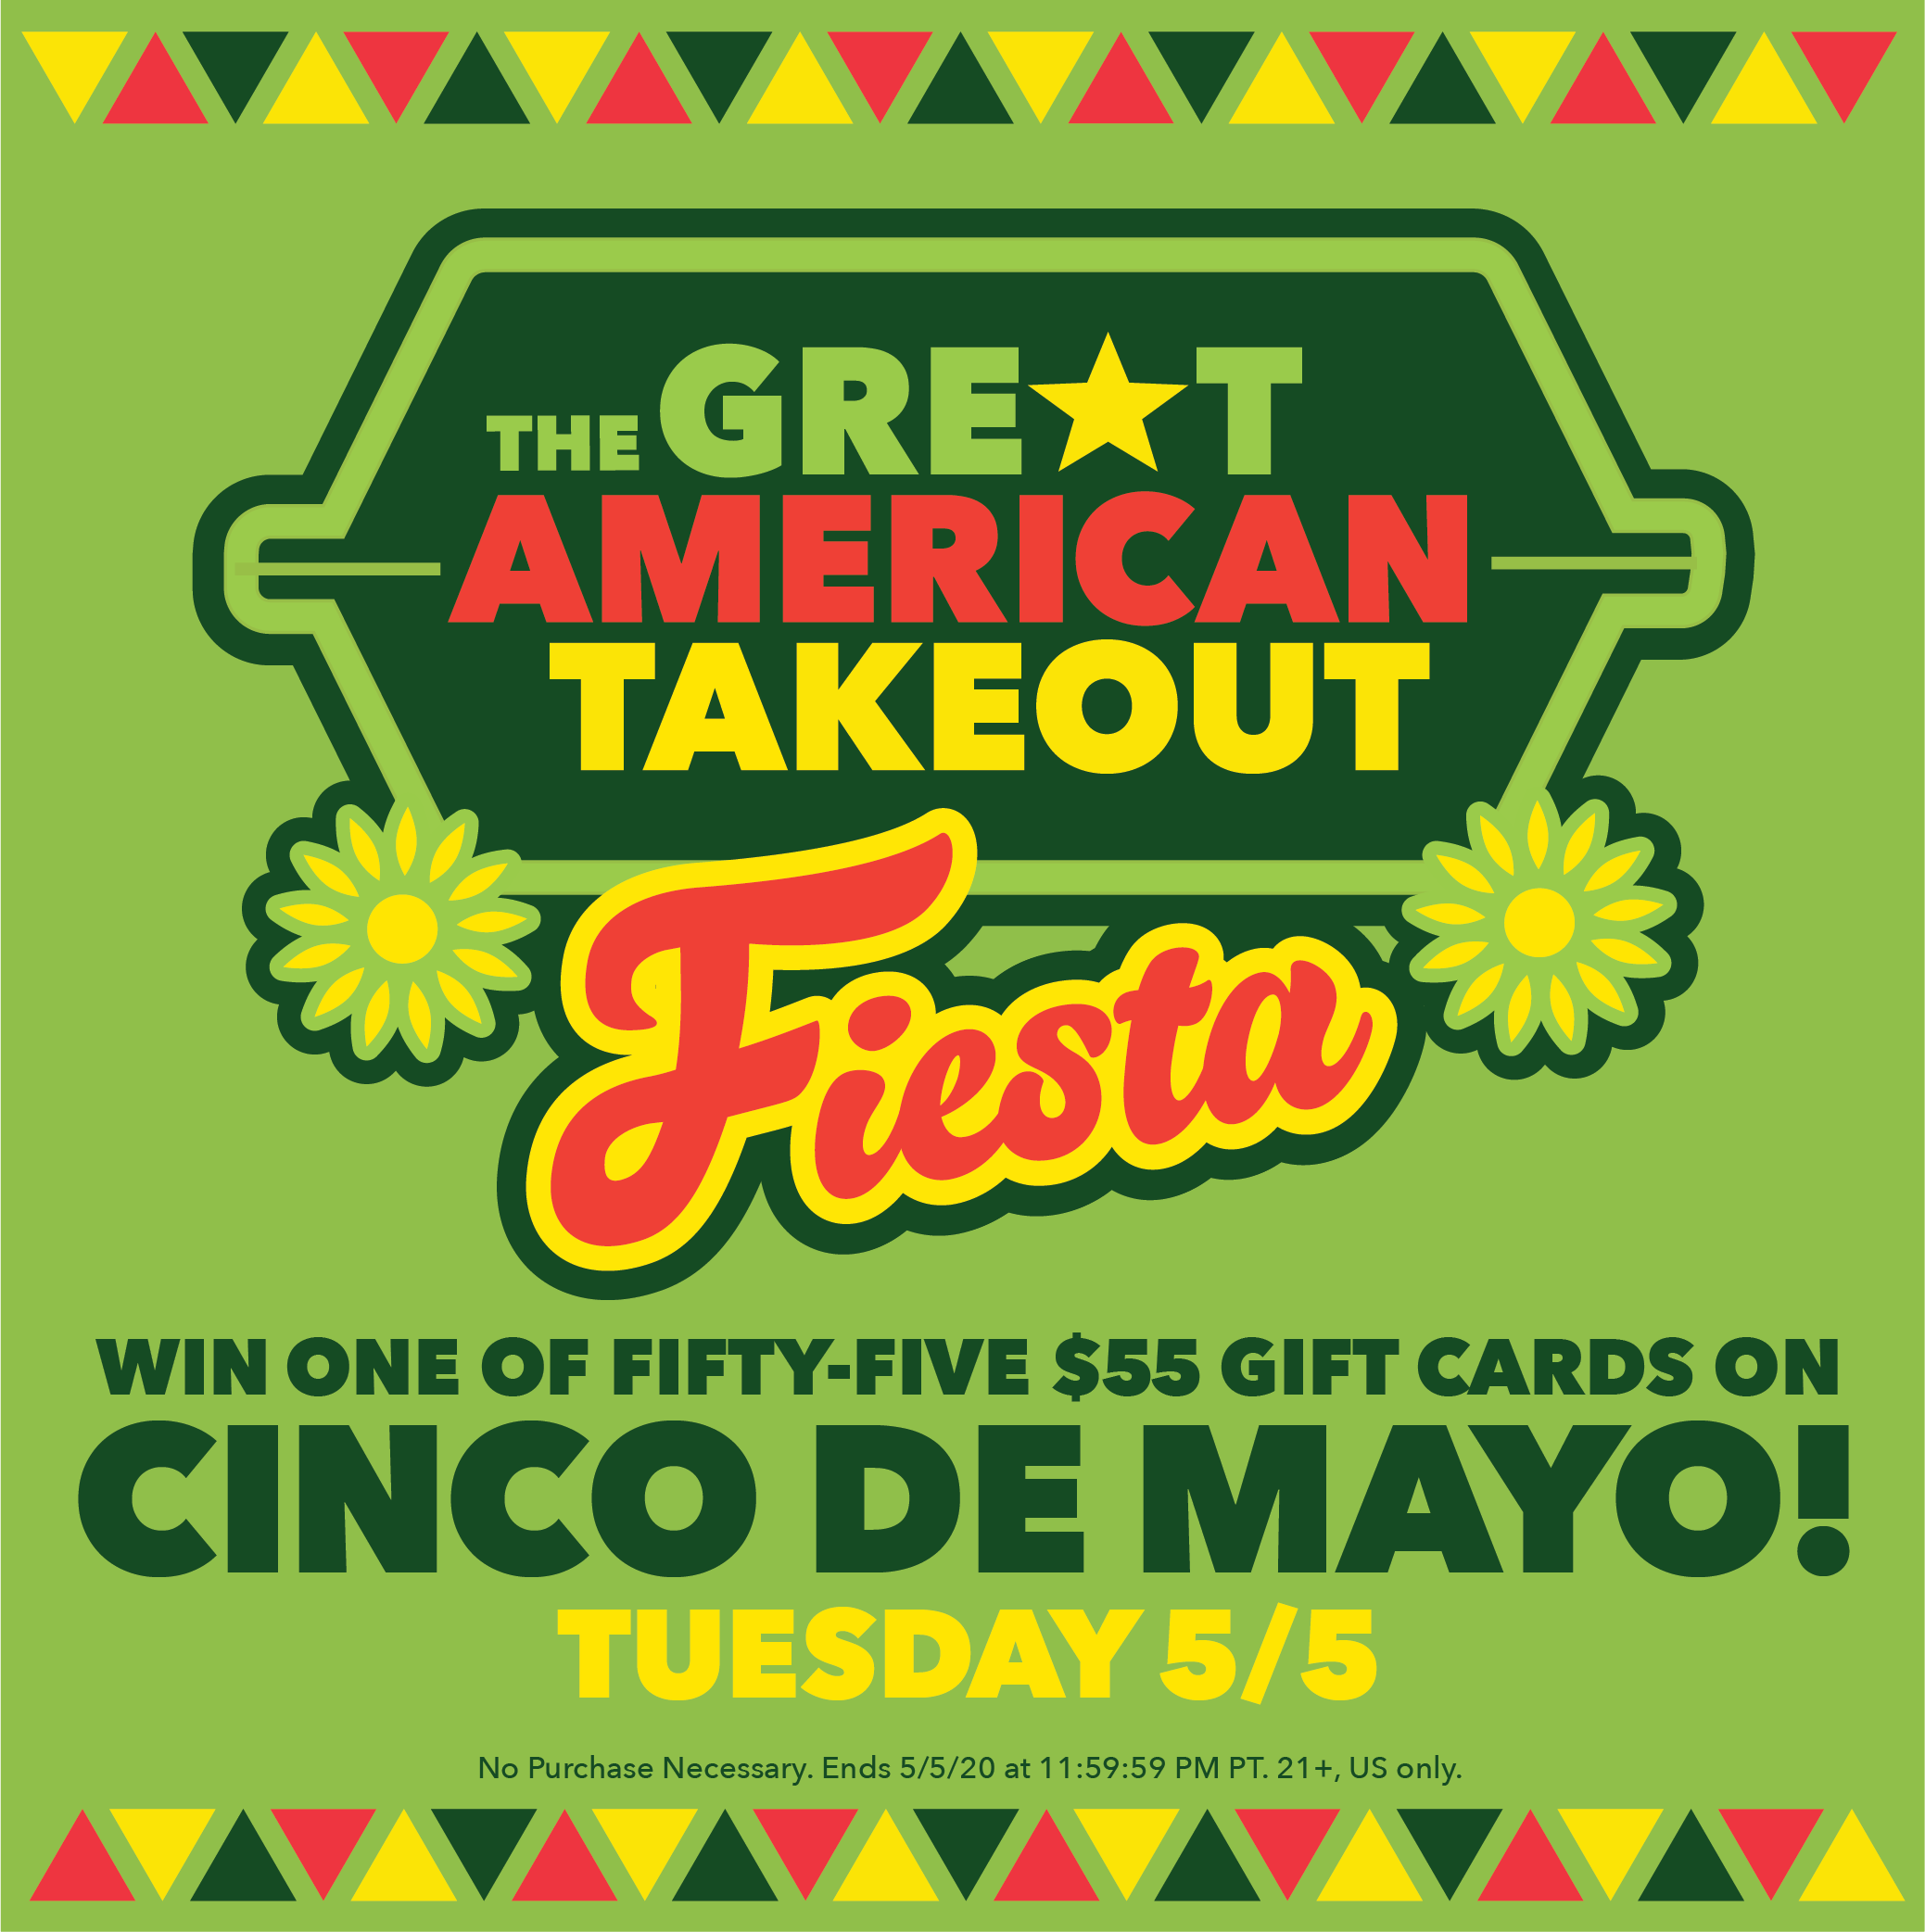 Great American Takeout - Cinco De Mayo - Win one of fifty-five $55 gift cards